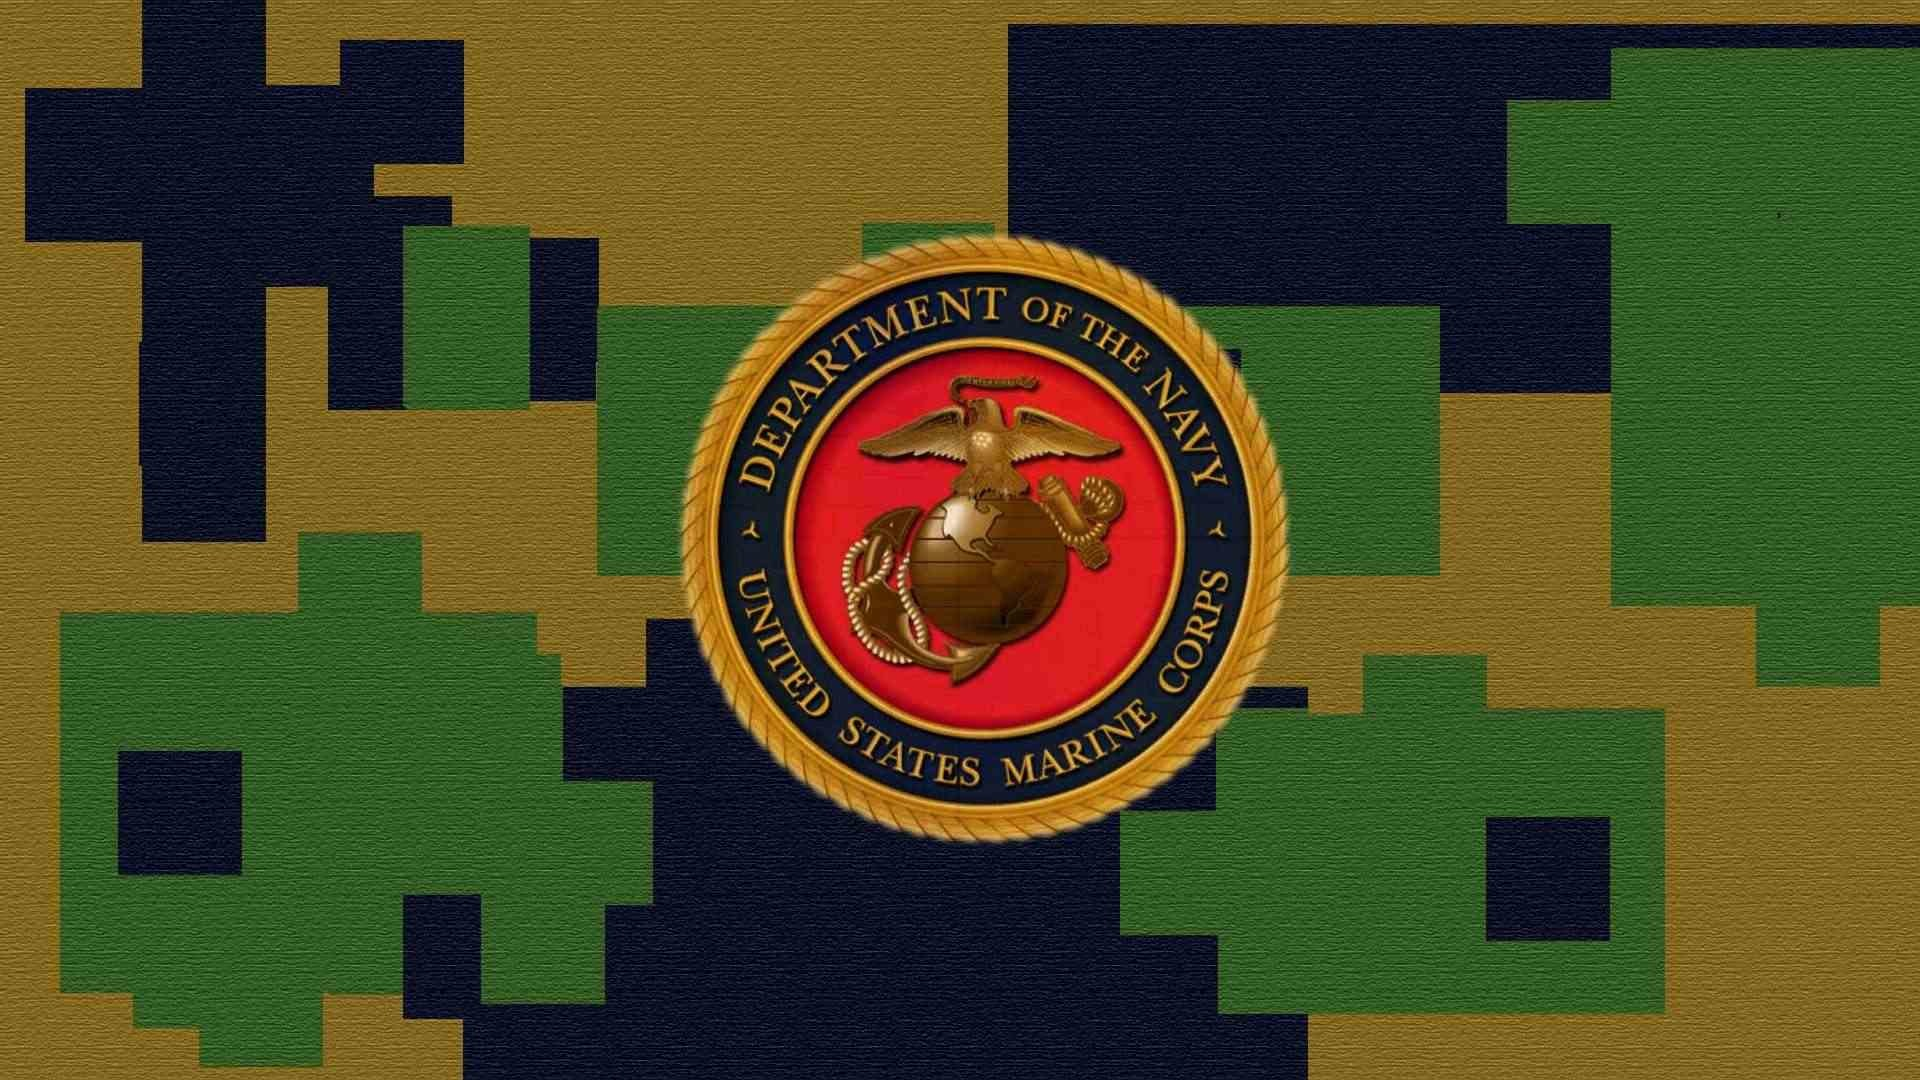 1920x1080 Pictures united states marine corps iphone wallpapers iphone themes .